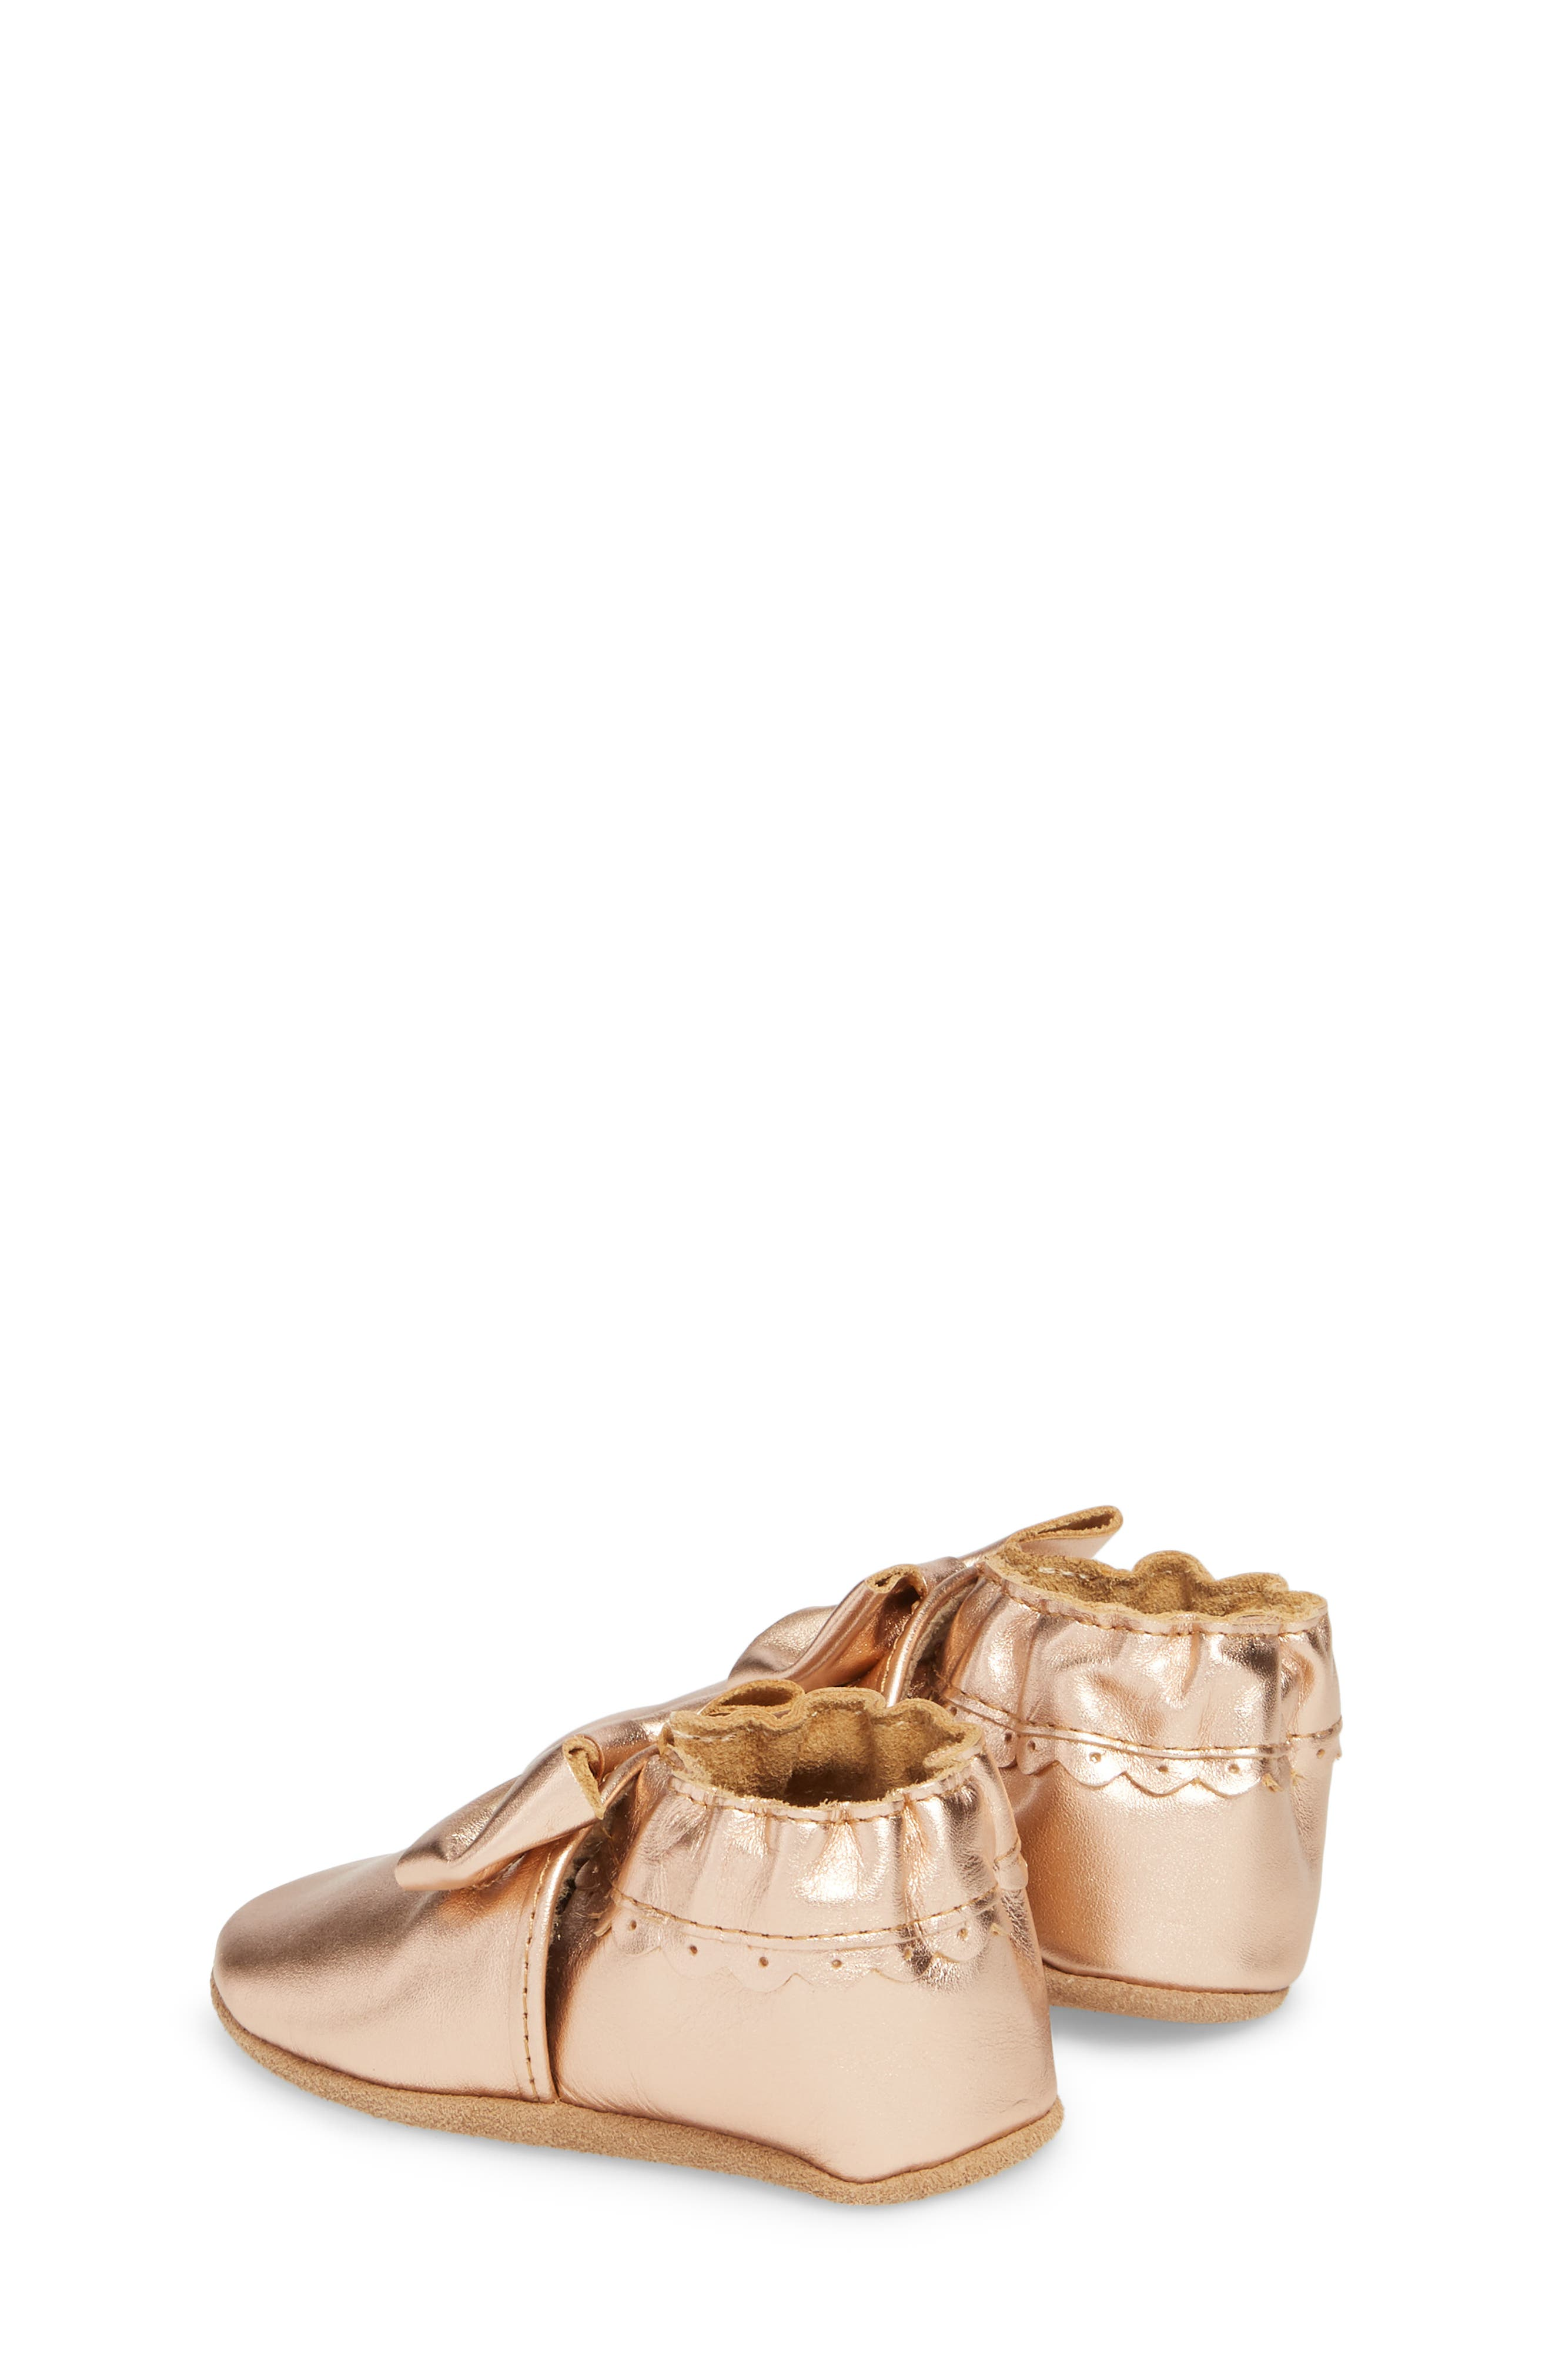 ROBEEZ<SUP>®</SUP>, Rosie Crib Shoes, Alternate thumbnail 2, color, ROSE GOLD